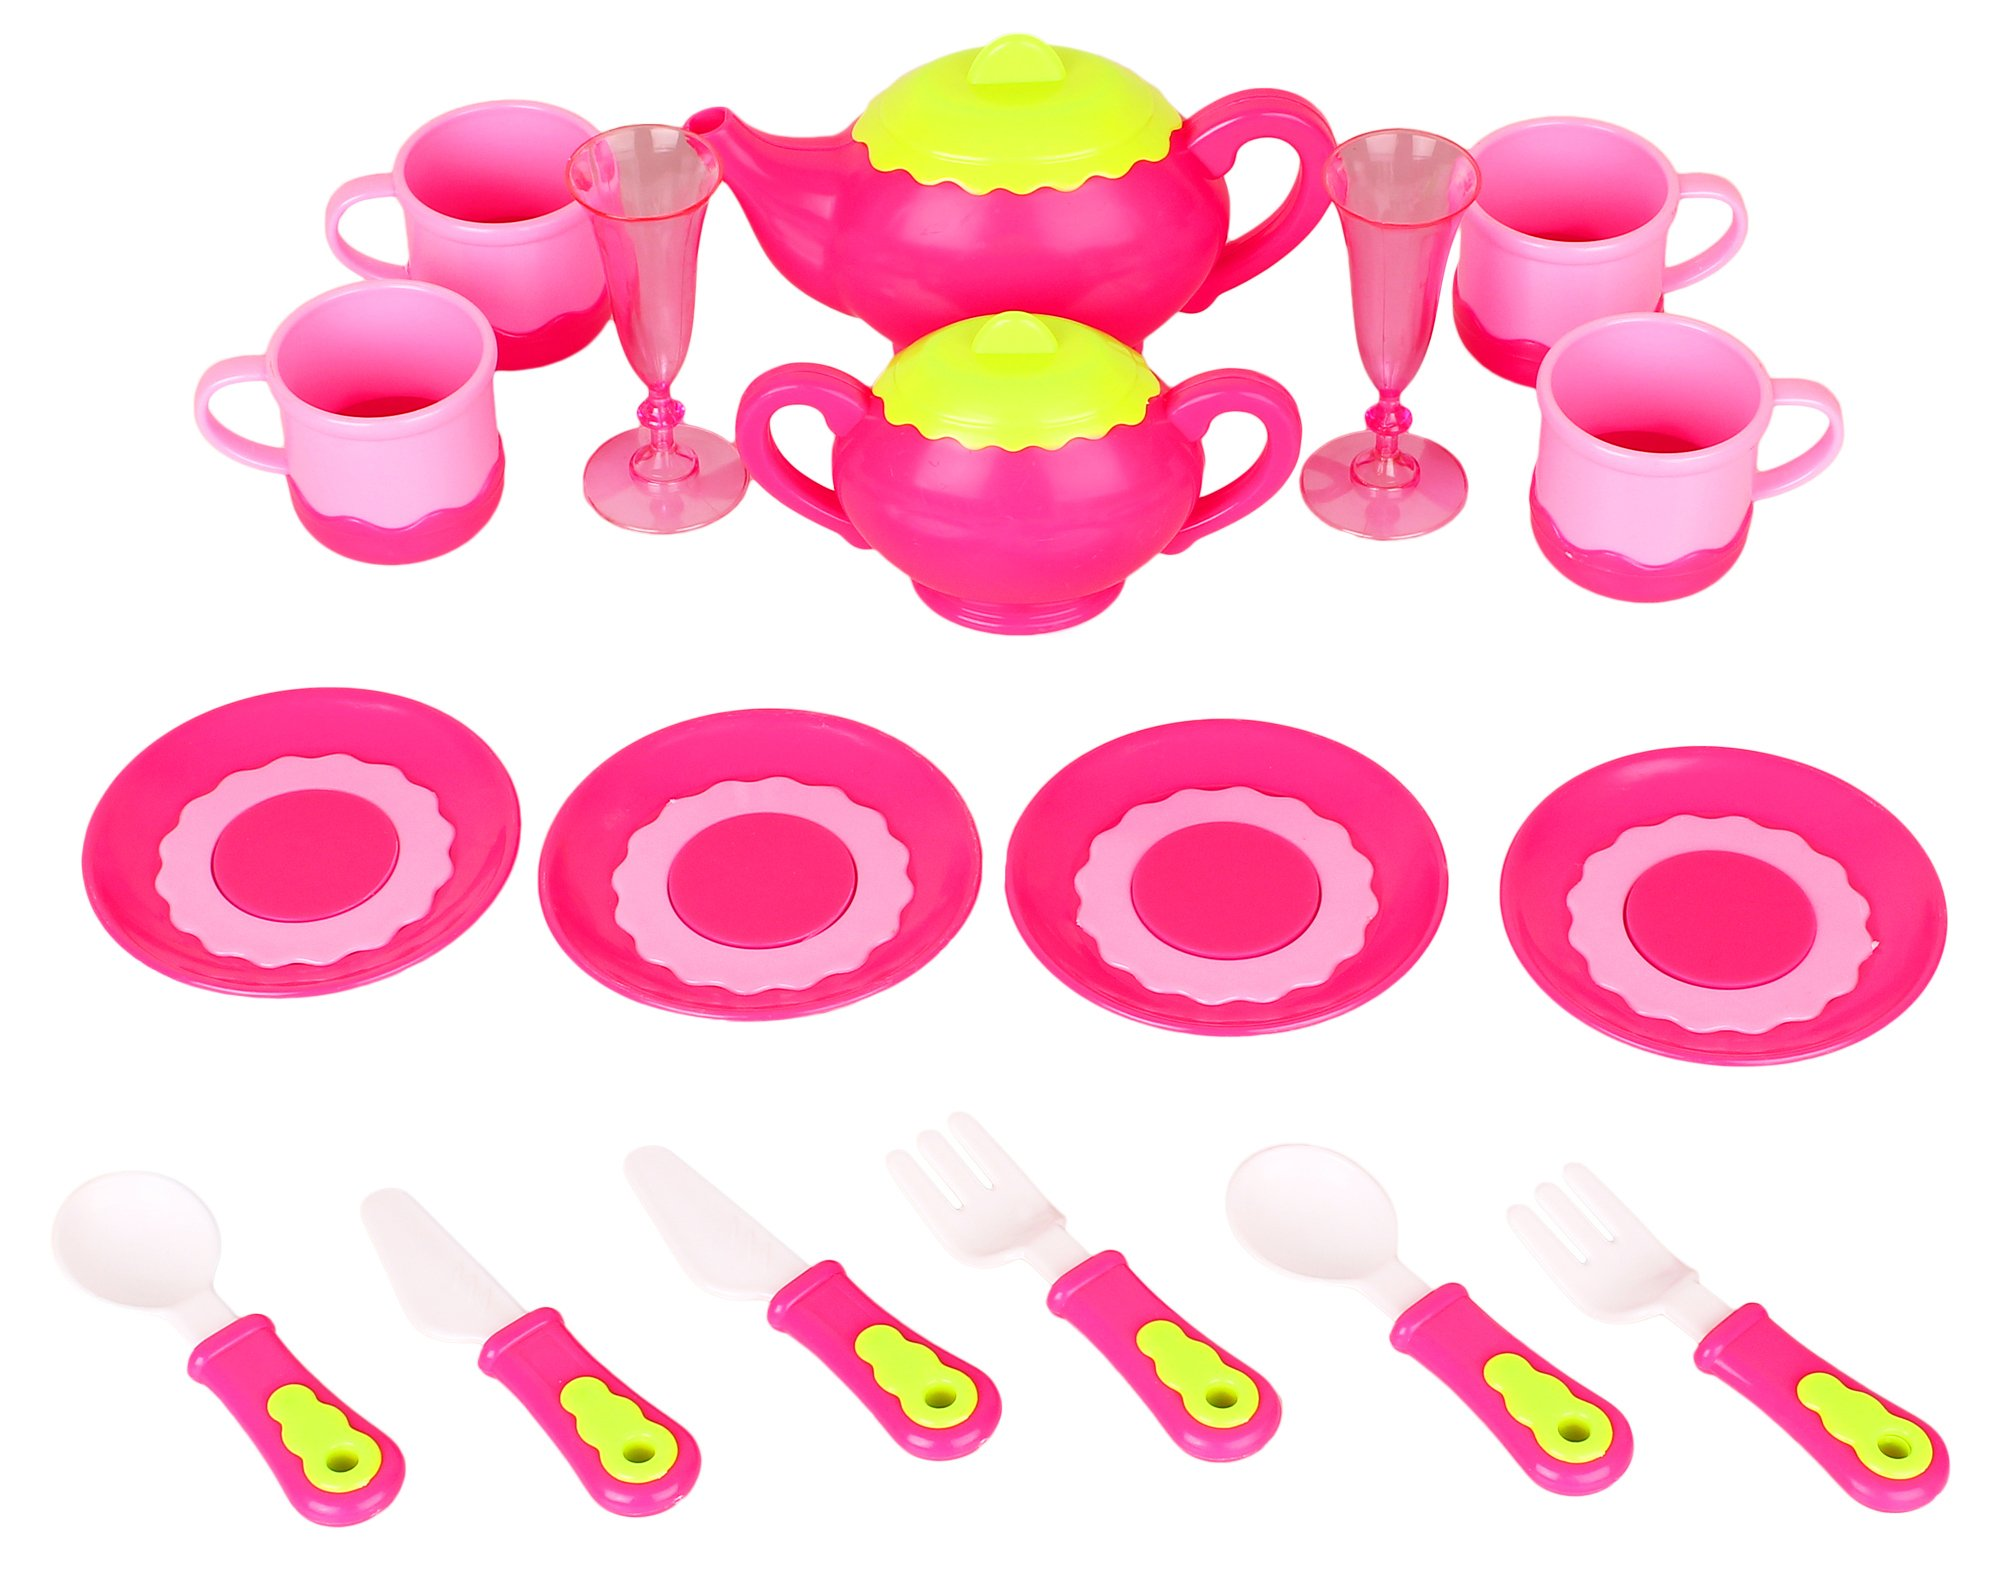 Liberty Imports Deluxe Pink Tea Set for Kids with Tea Pots, Cups, Dishes and Kitchen Utensils (18 pcs) by Liberty Imports